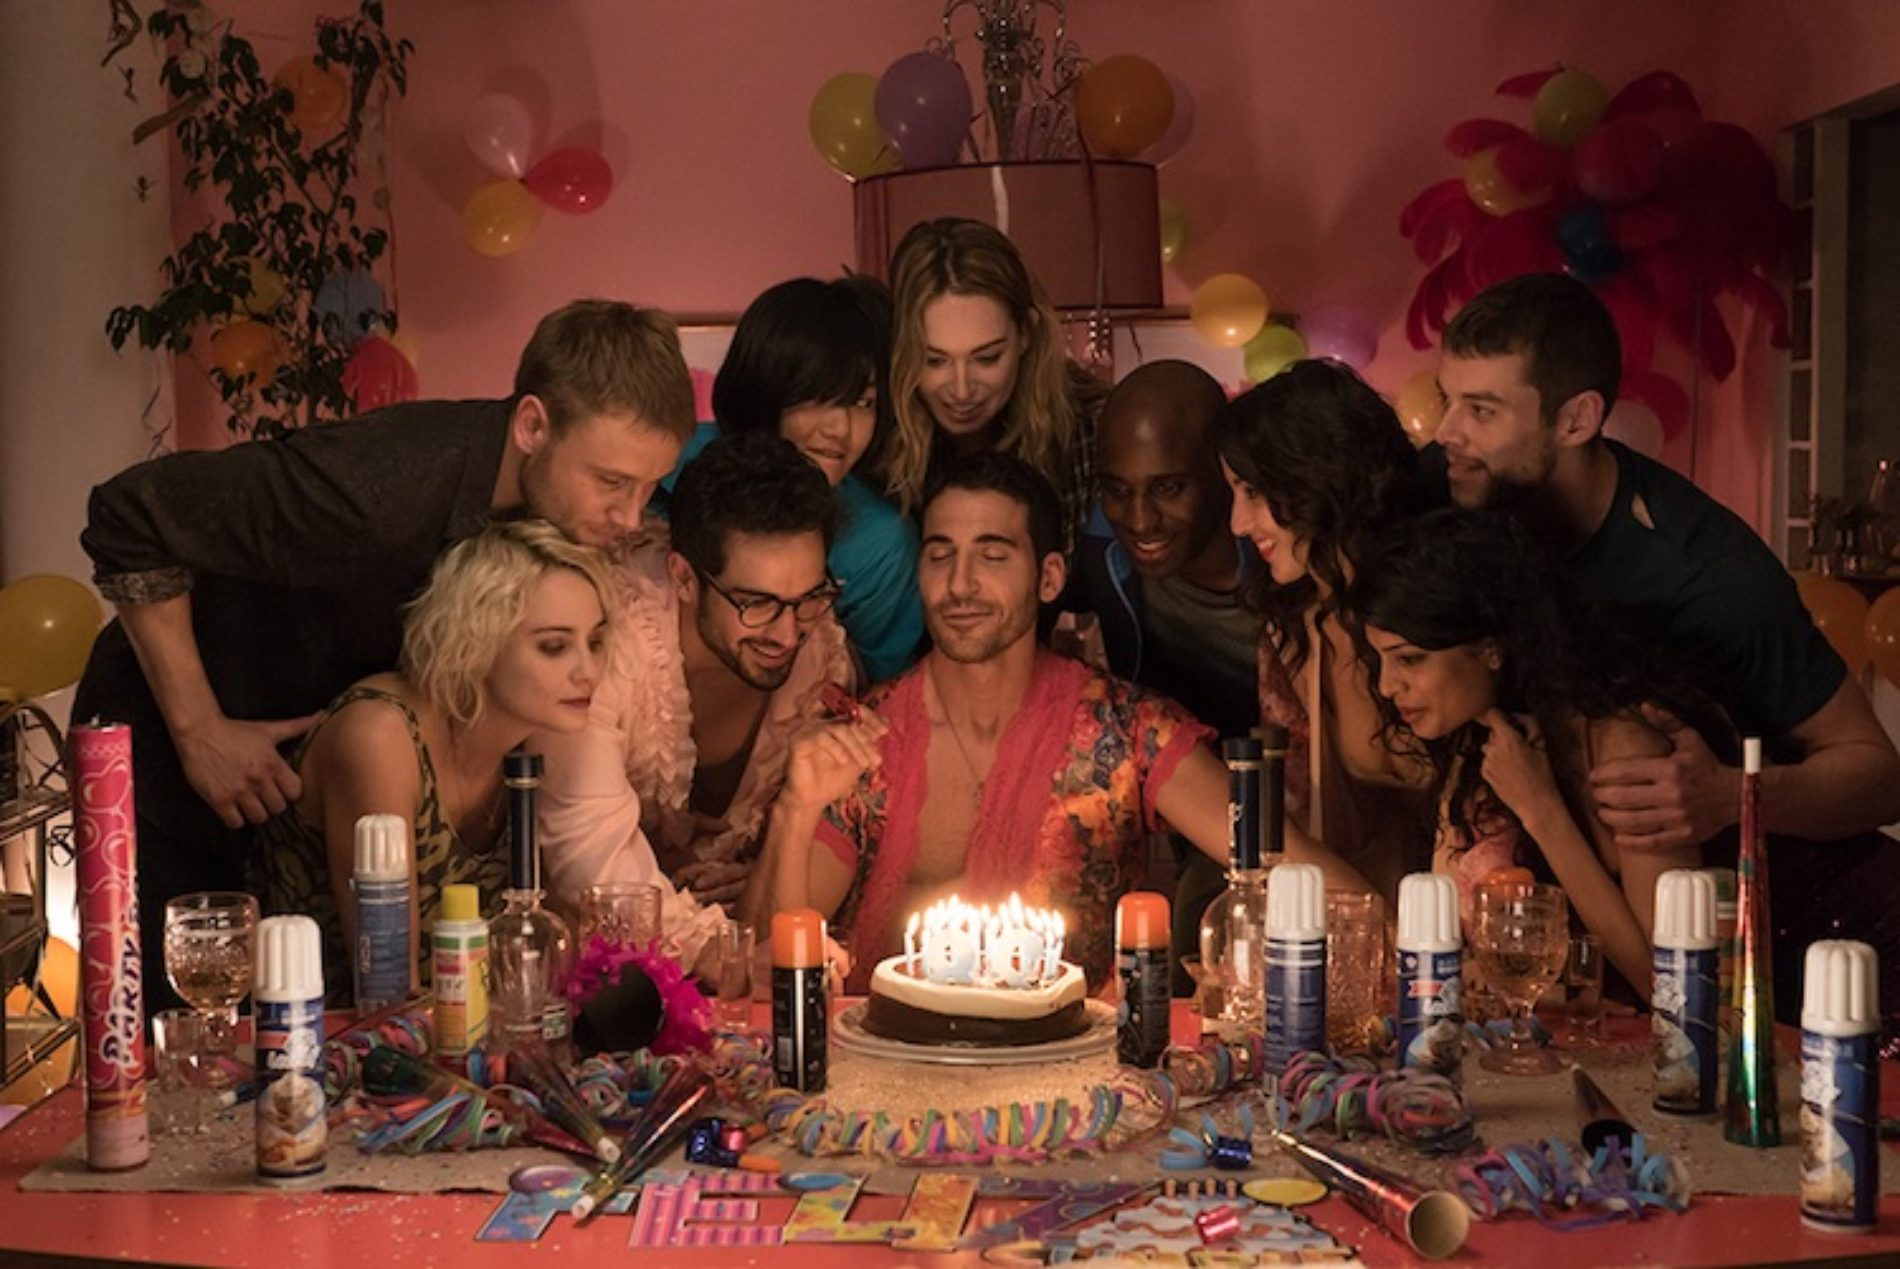 """'Sense8' Finale Special First Look: Cast Hopes To Give Fans An """"End That Will Satisfy Them"""""""